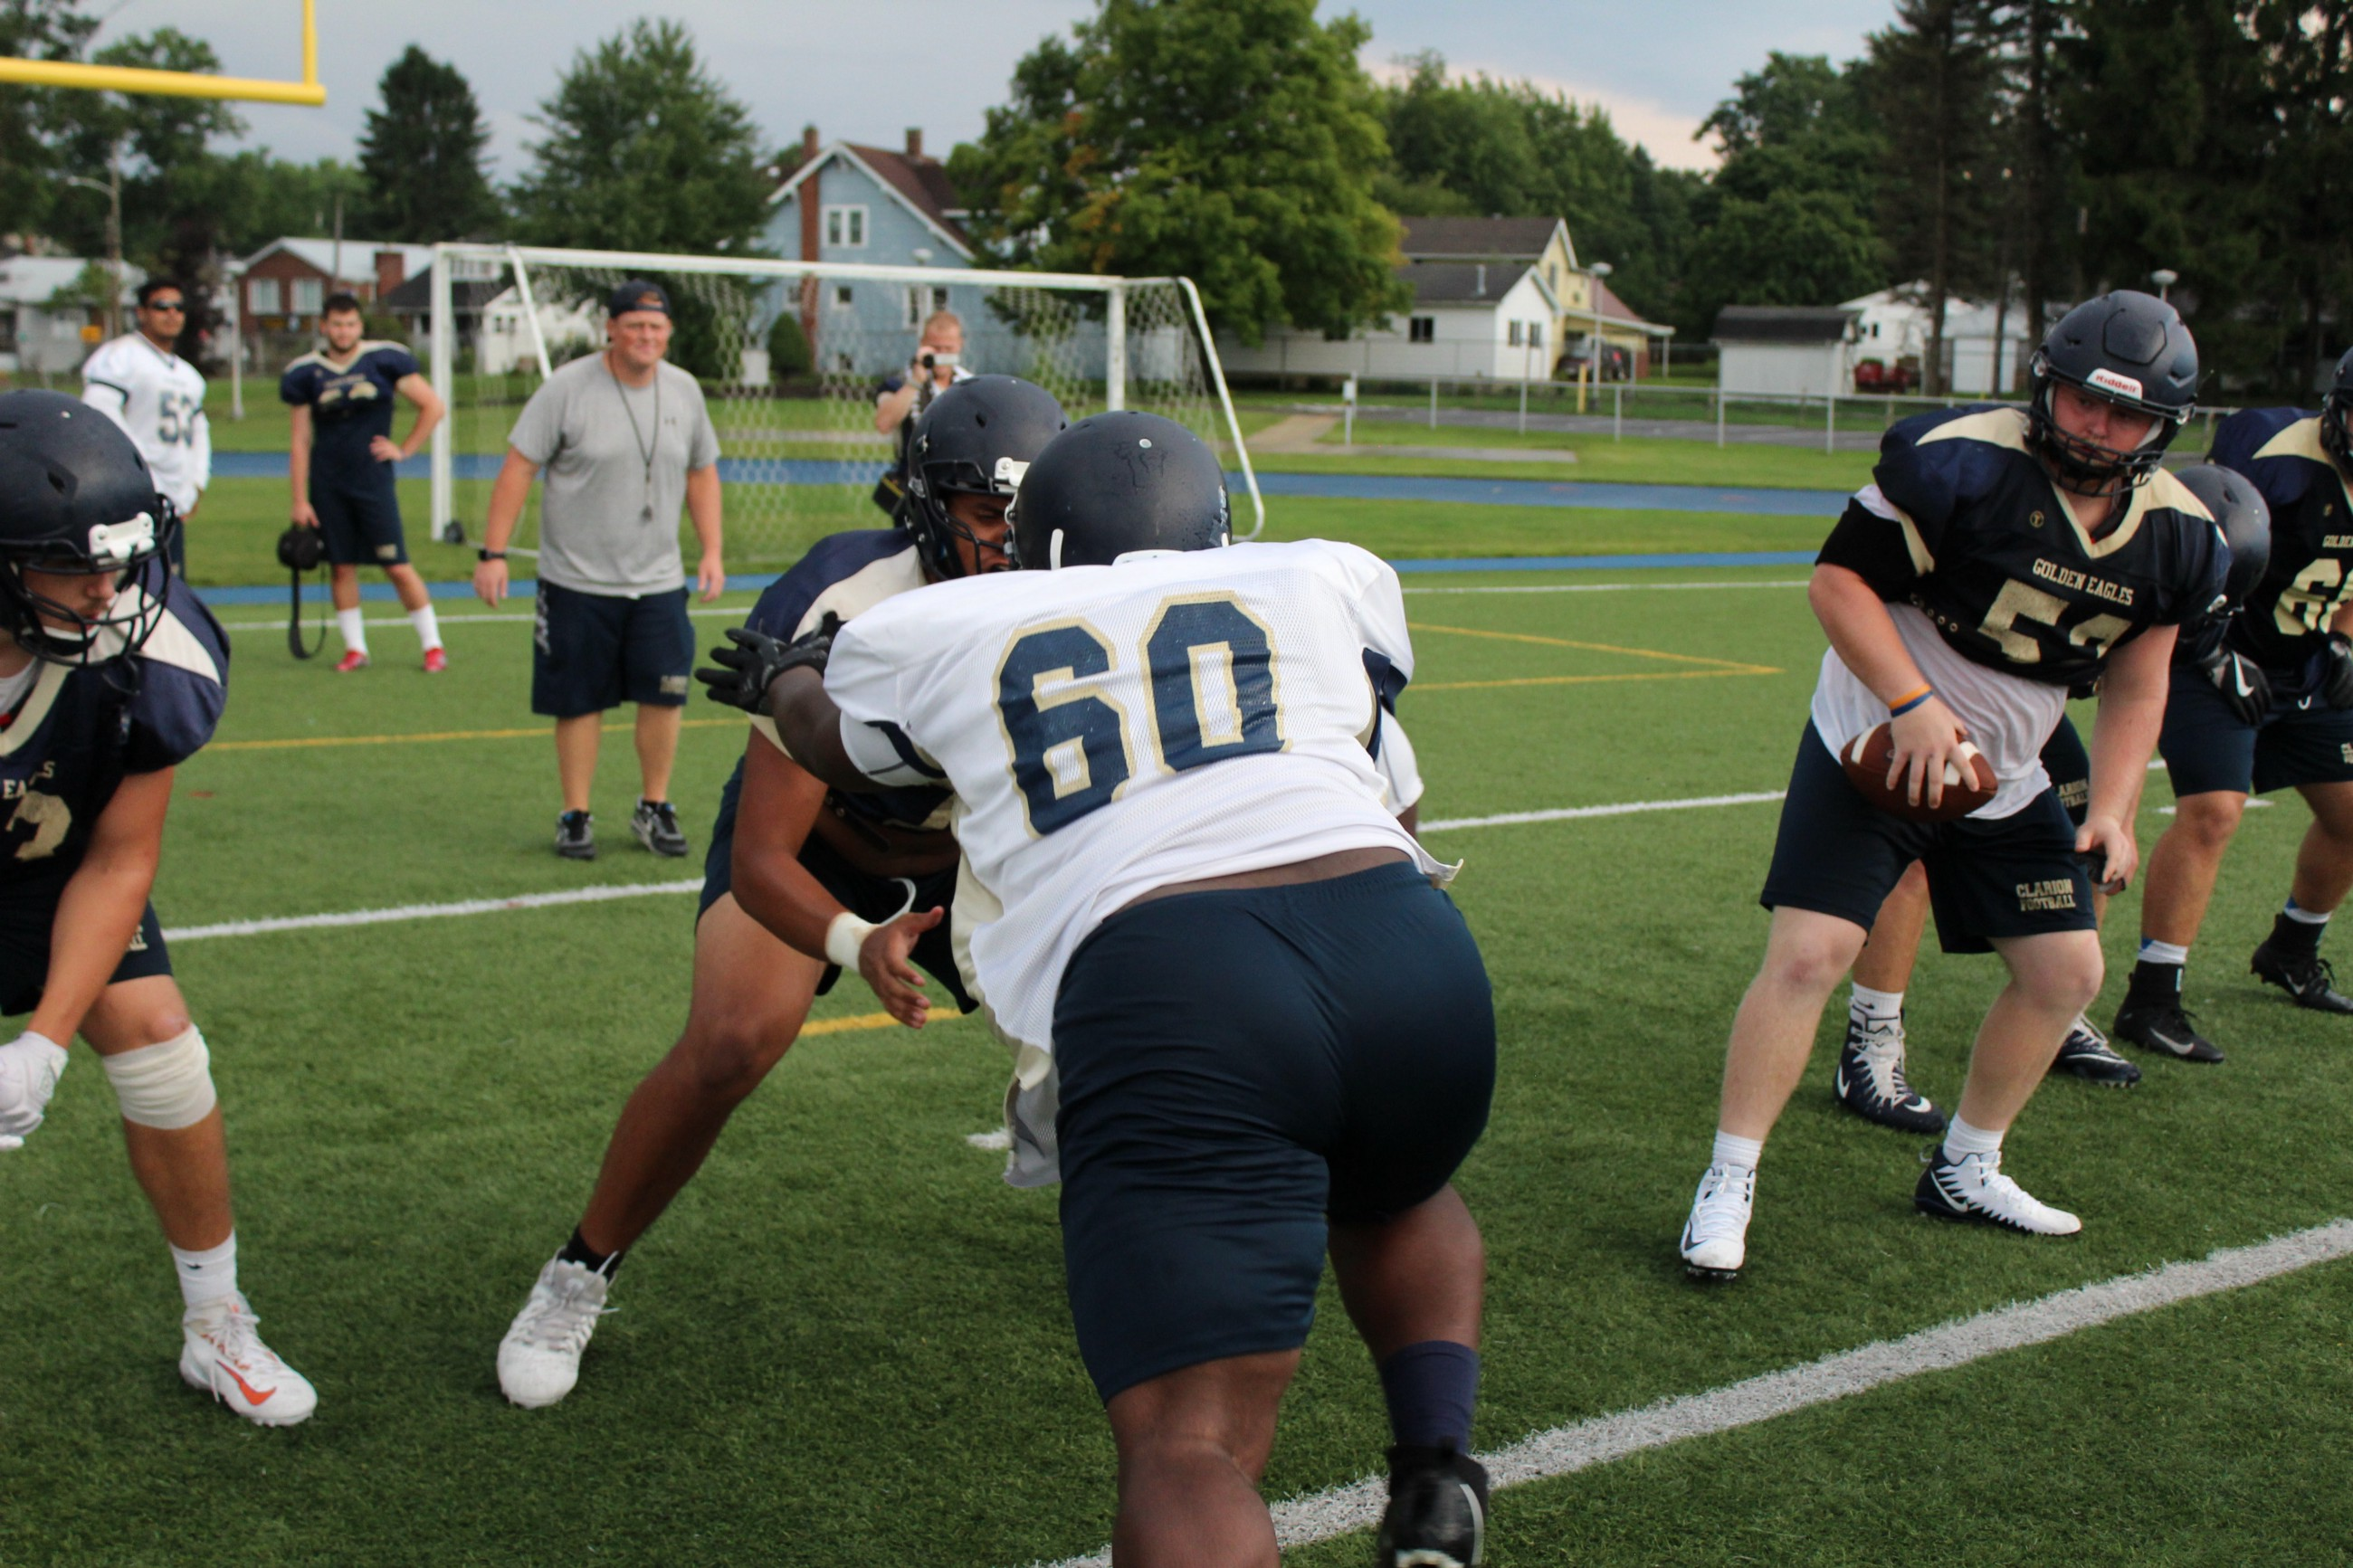 Terry LeBlanc on Team Building Exercises for Coaches